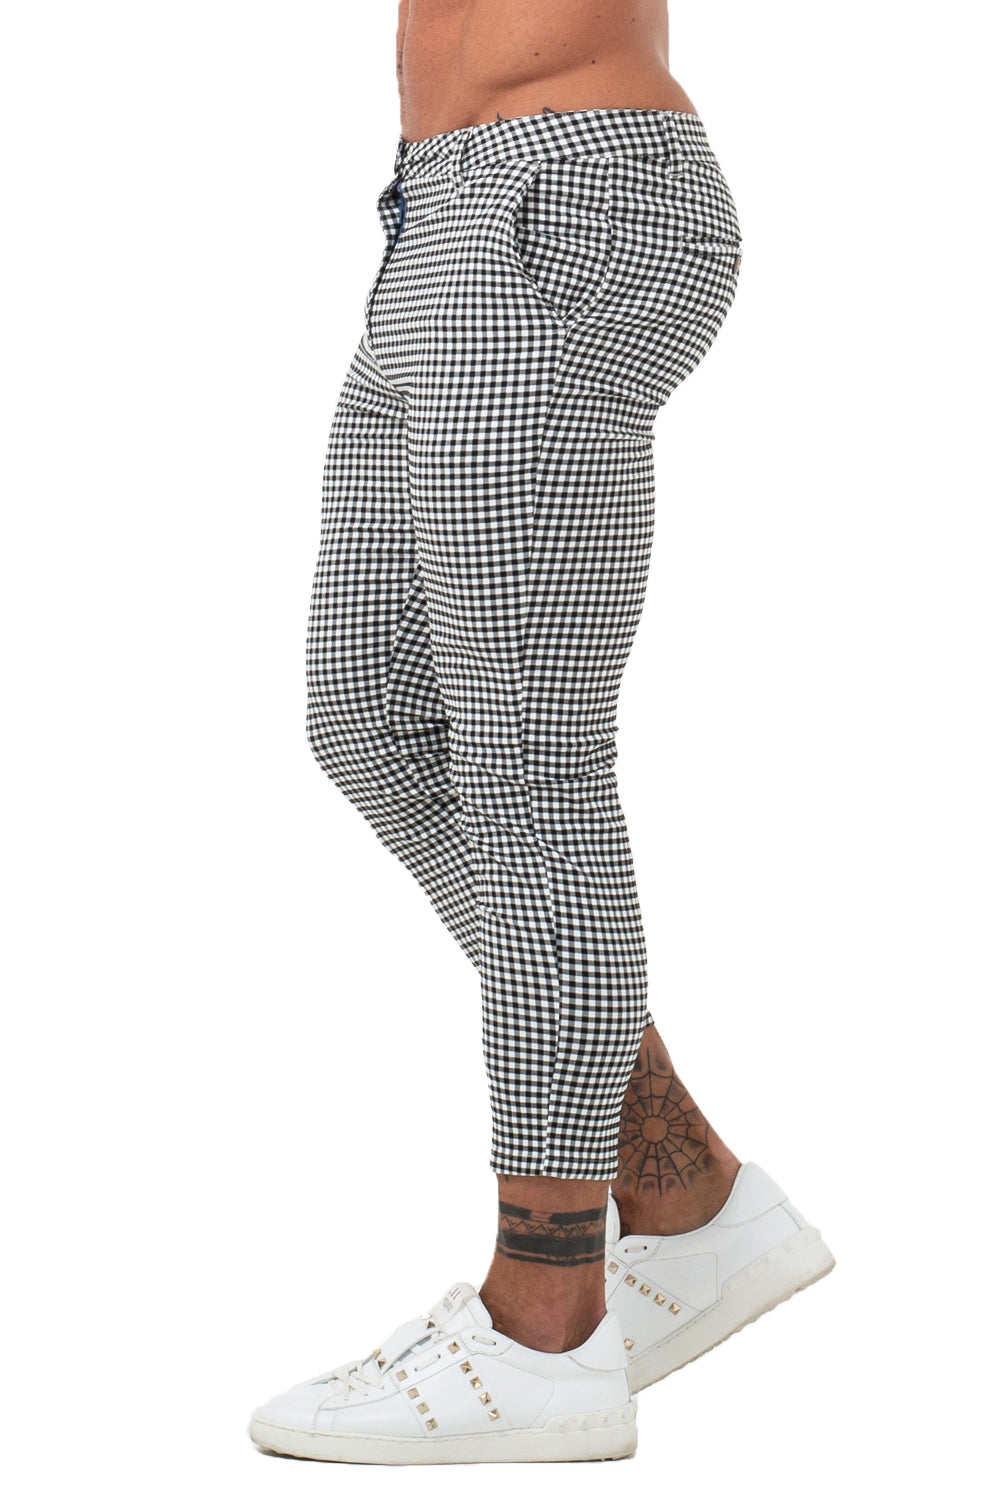 7357 Grey Checked Skinny Fit Chinos